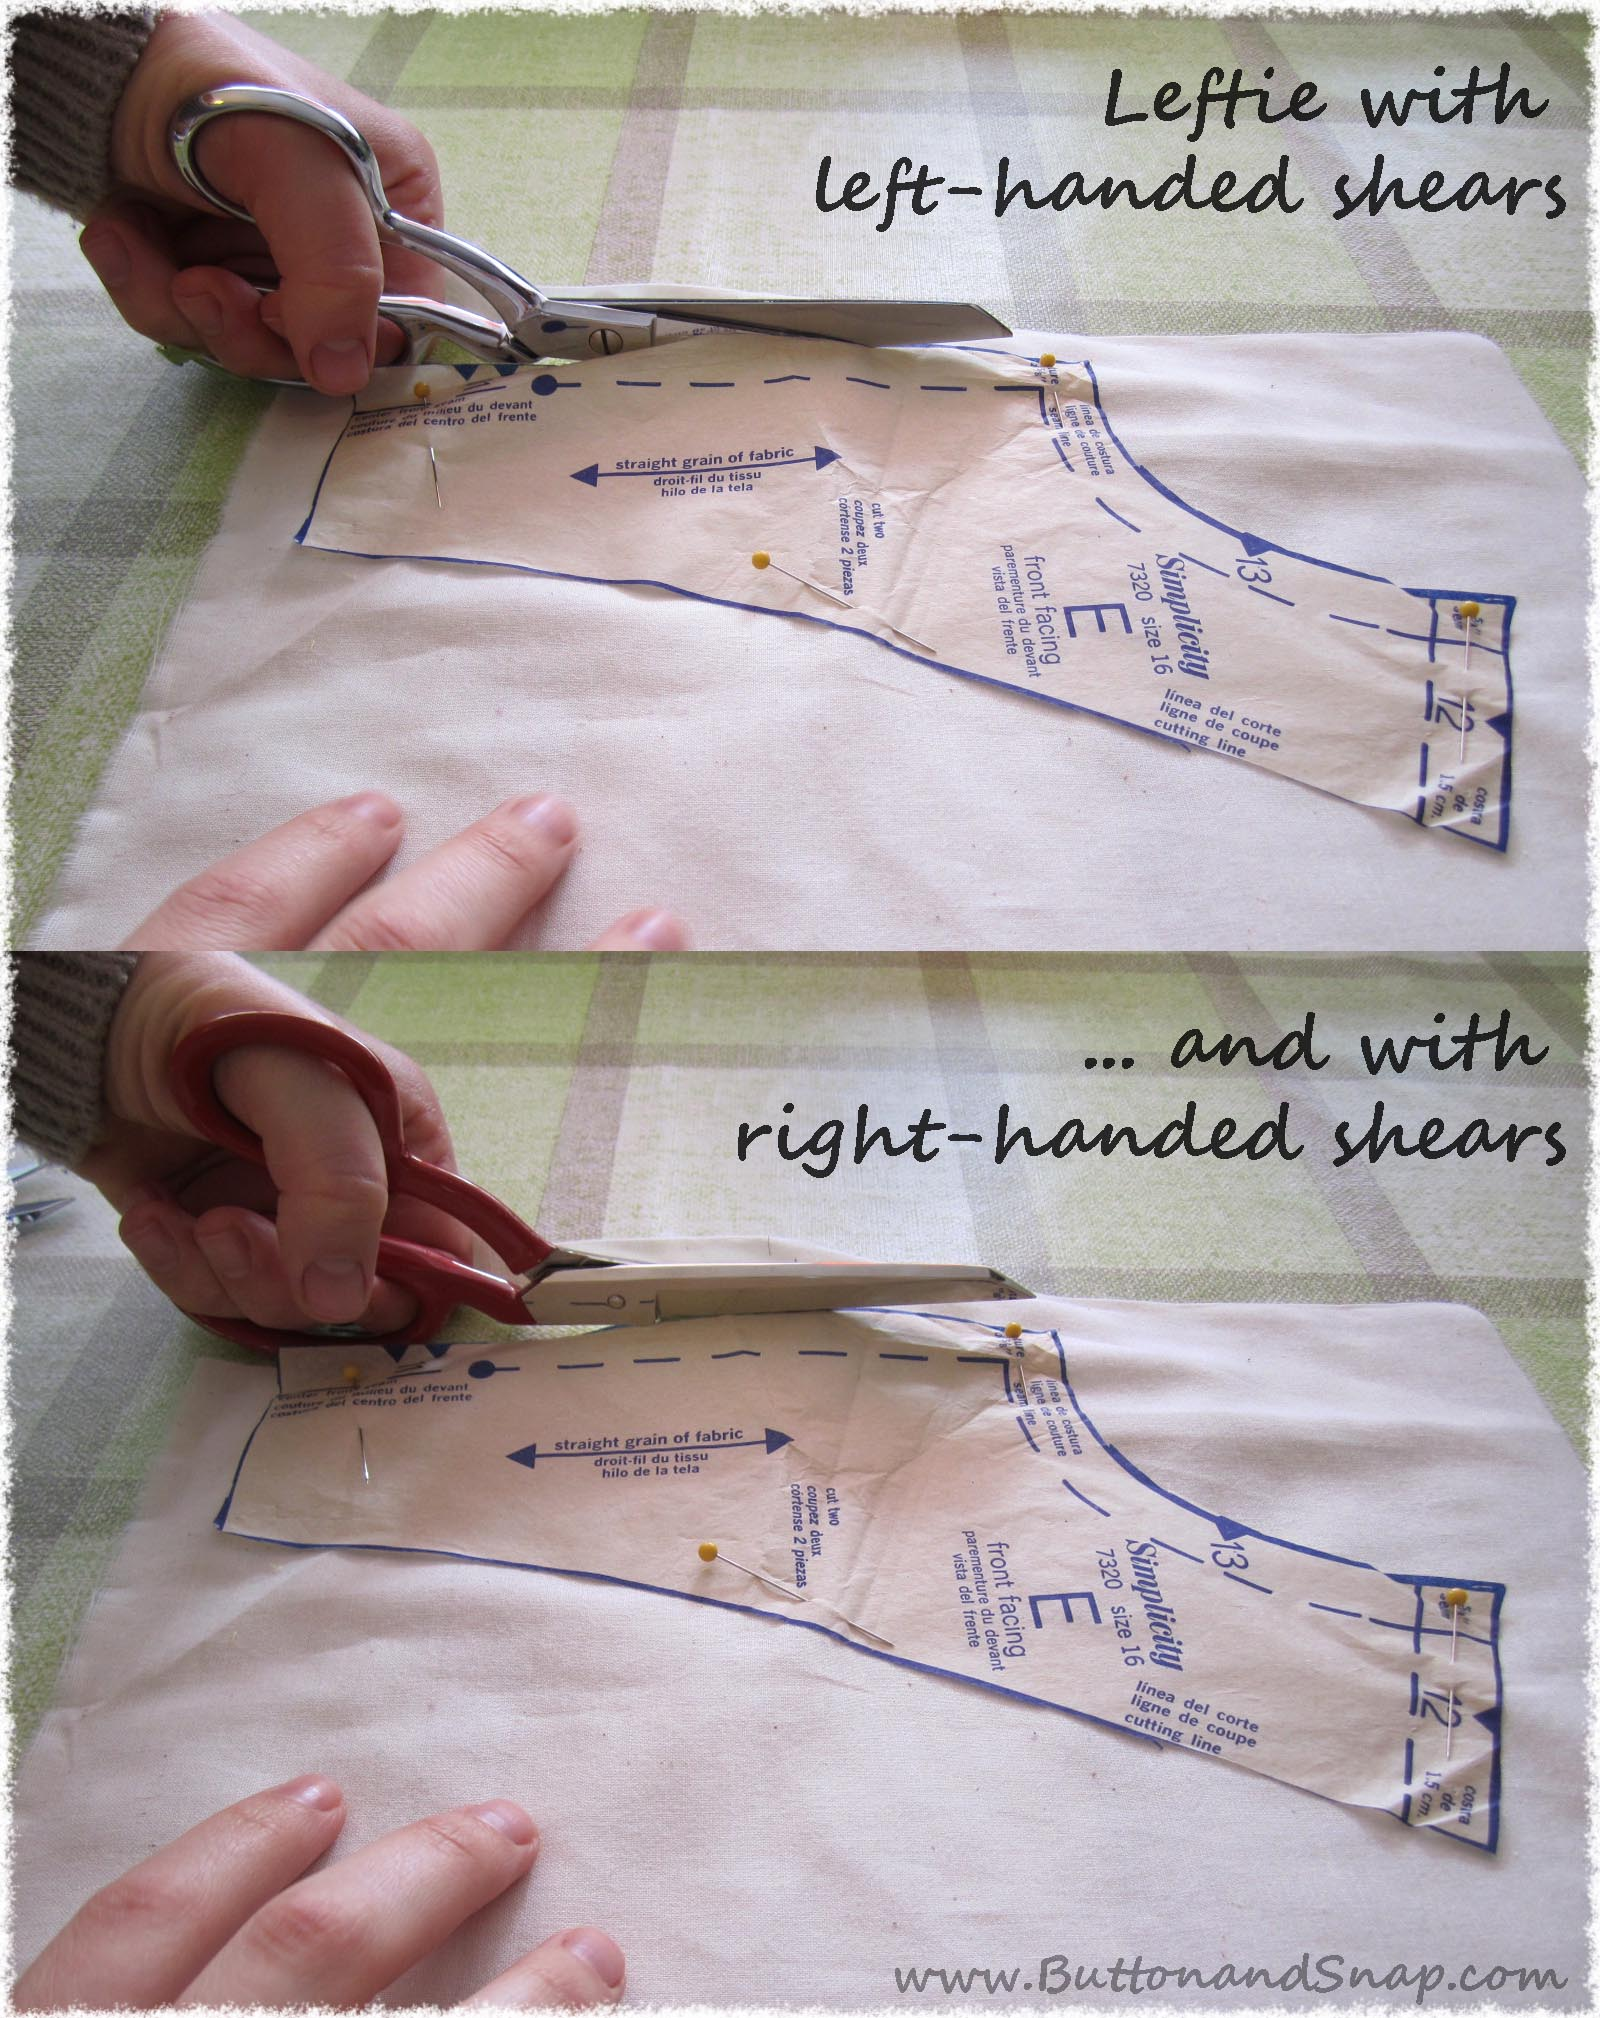 Cutting fabric with left-handed shears vs right-handed shears